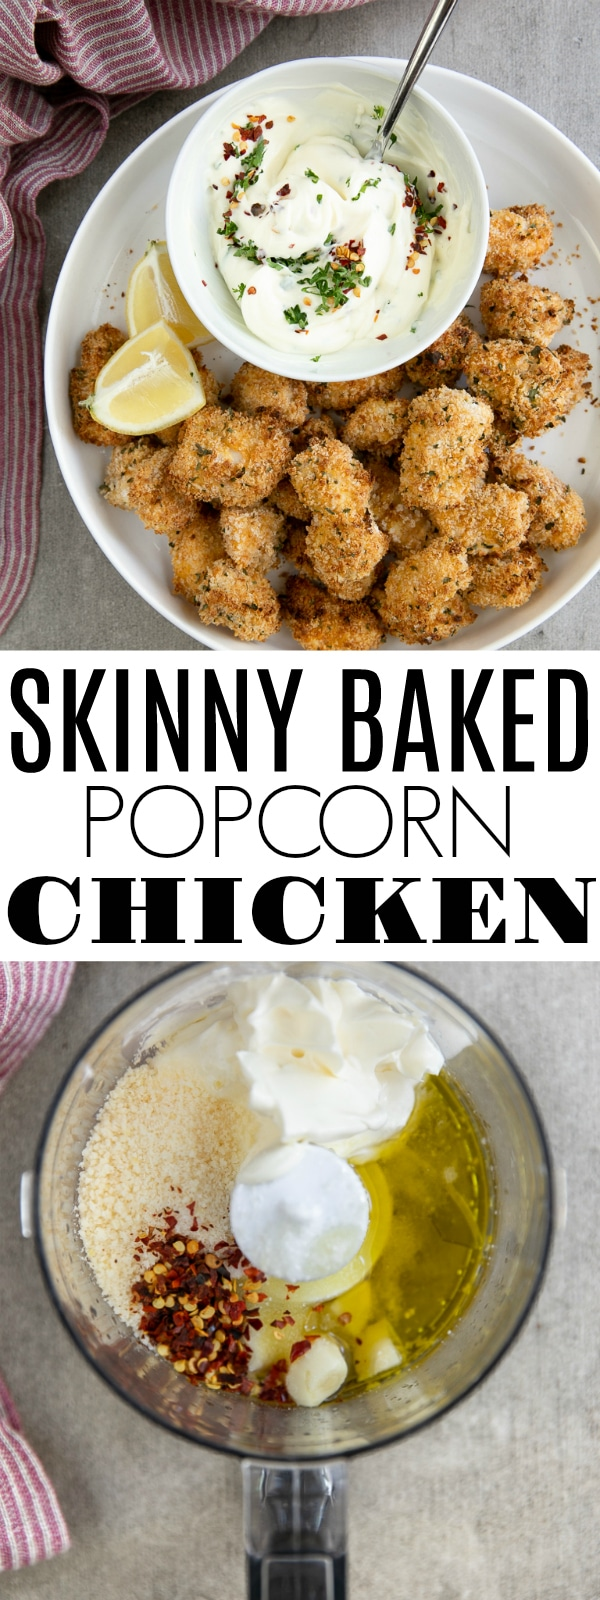 Skinny Baked Popcorn Chicken Recipe with Creamy Garlic Aioli is baked, not fried, and loved by all ages. Enjoy this popcorn chicken for game day or as a fun and easy weeknight dinner. #bakedchicken #chicken #popcornchicken #chickenpoppers #easydinnerrecipe #aioli | For this recipe and more visit, https://theforkedspoon.com